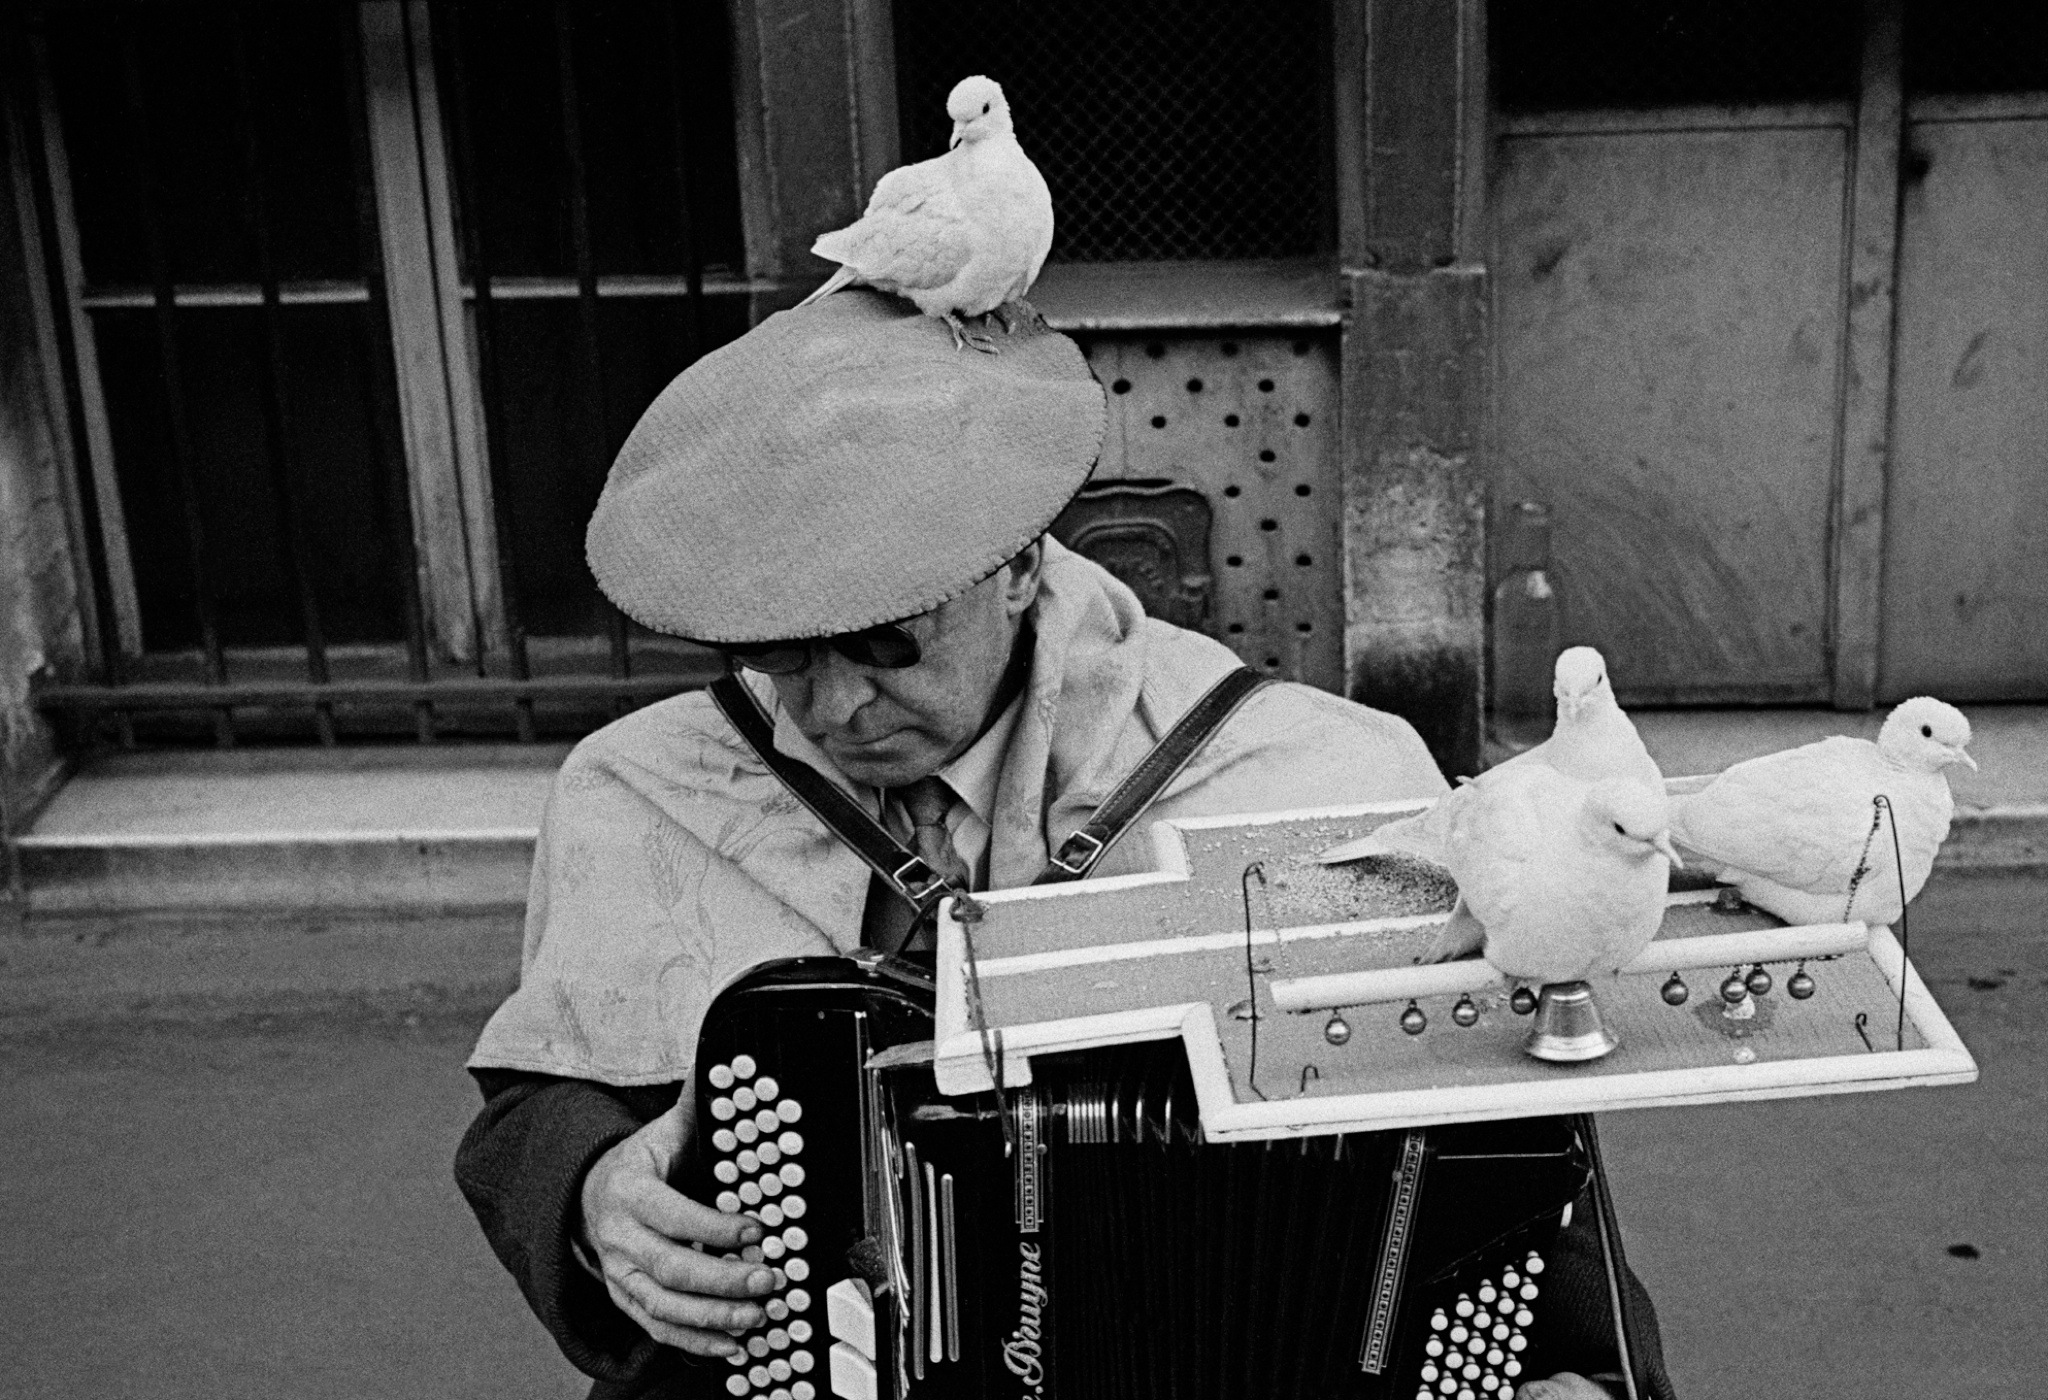 Frank Horvat_1955, Paris, Man with doves